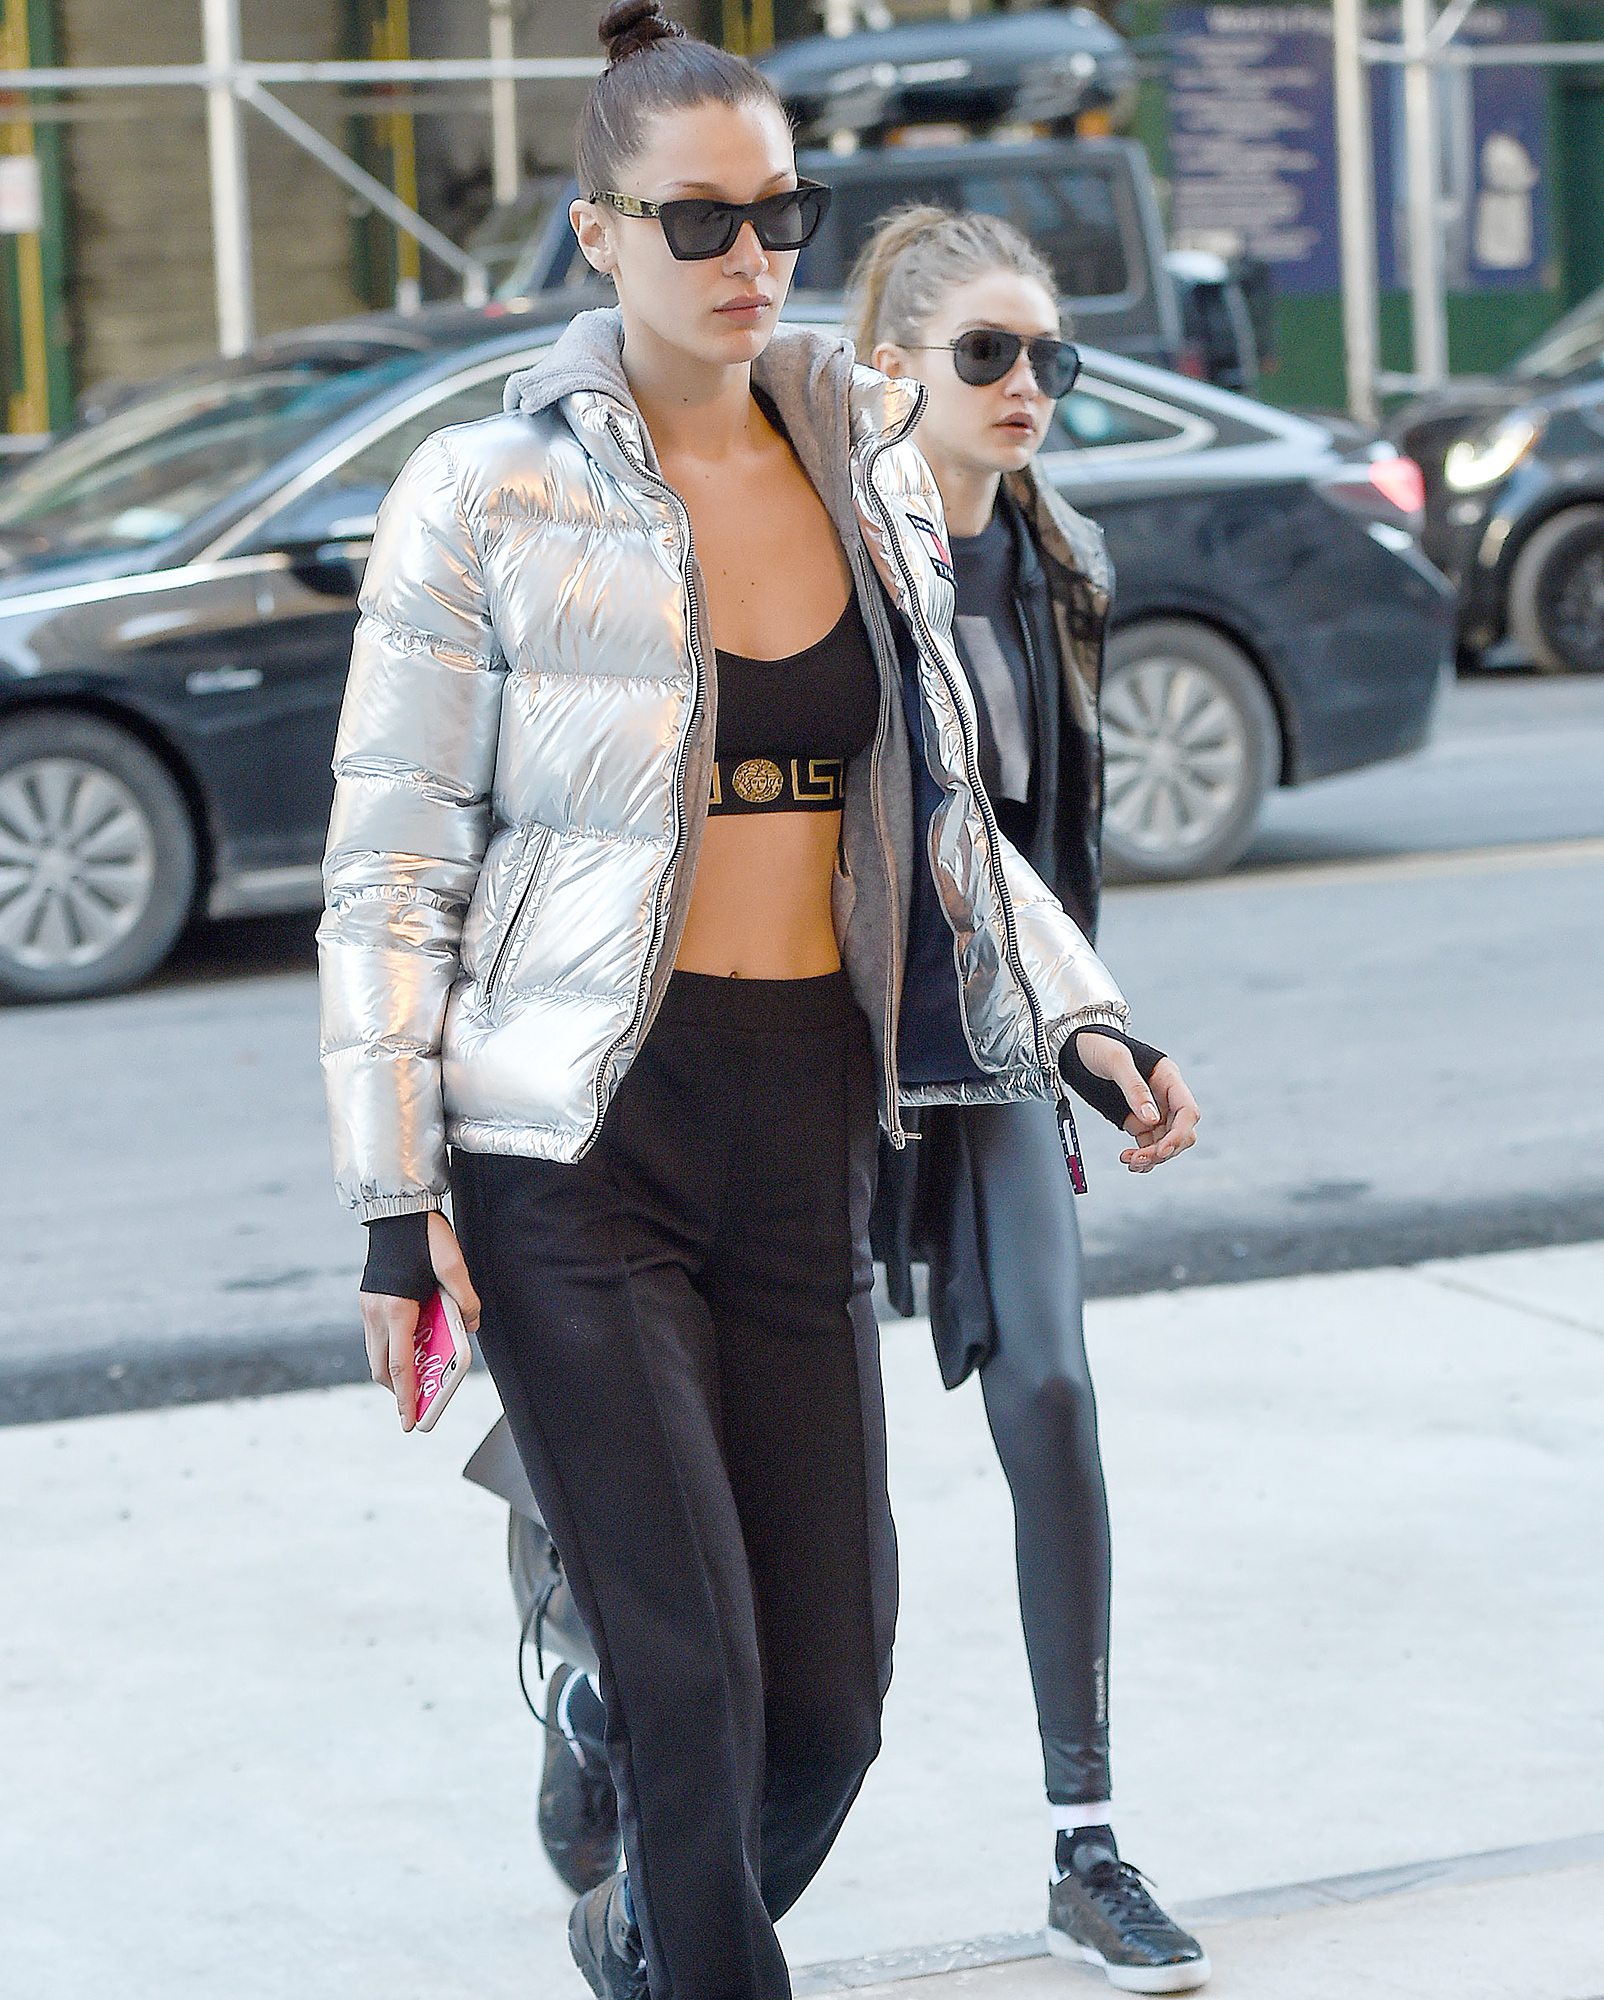 Bella Hadid and Gigi Hadid seen wearing workout clothes in New York City